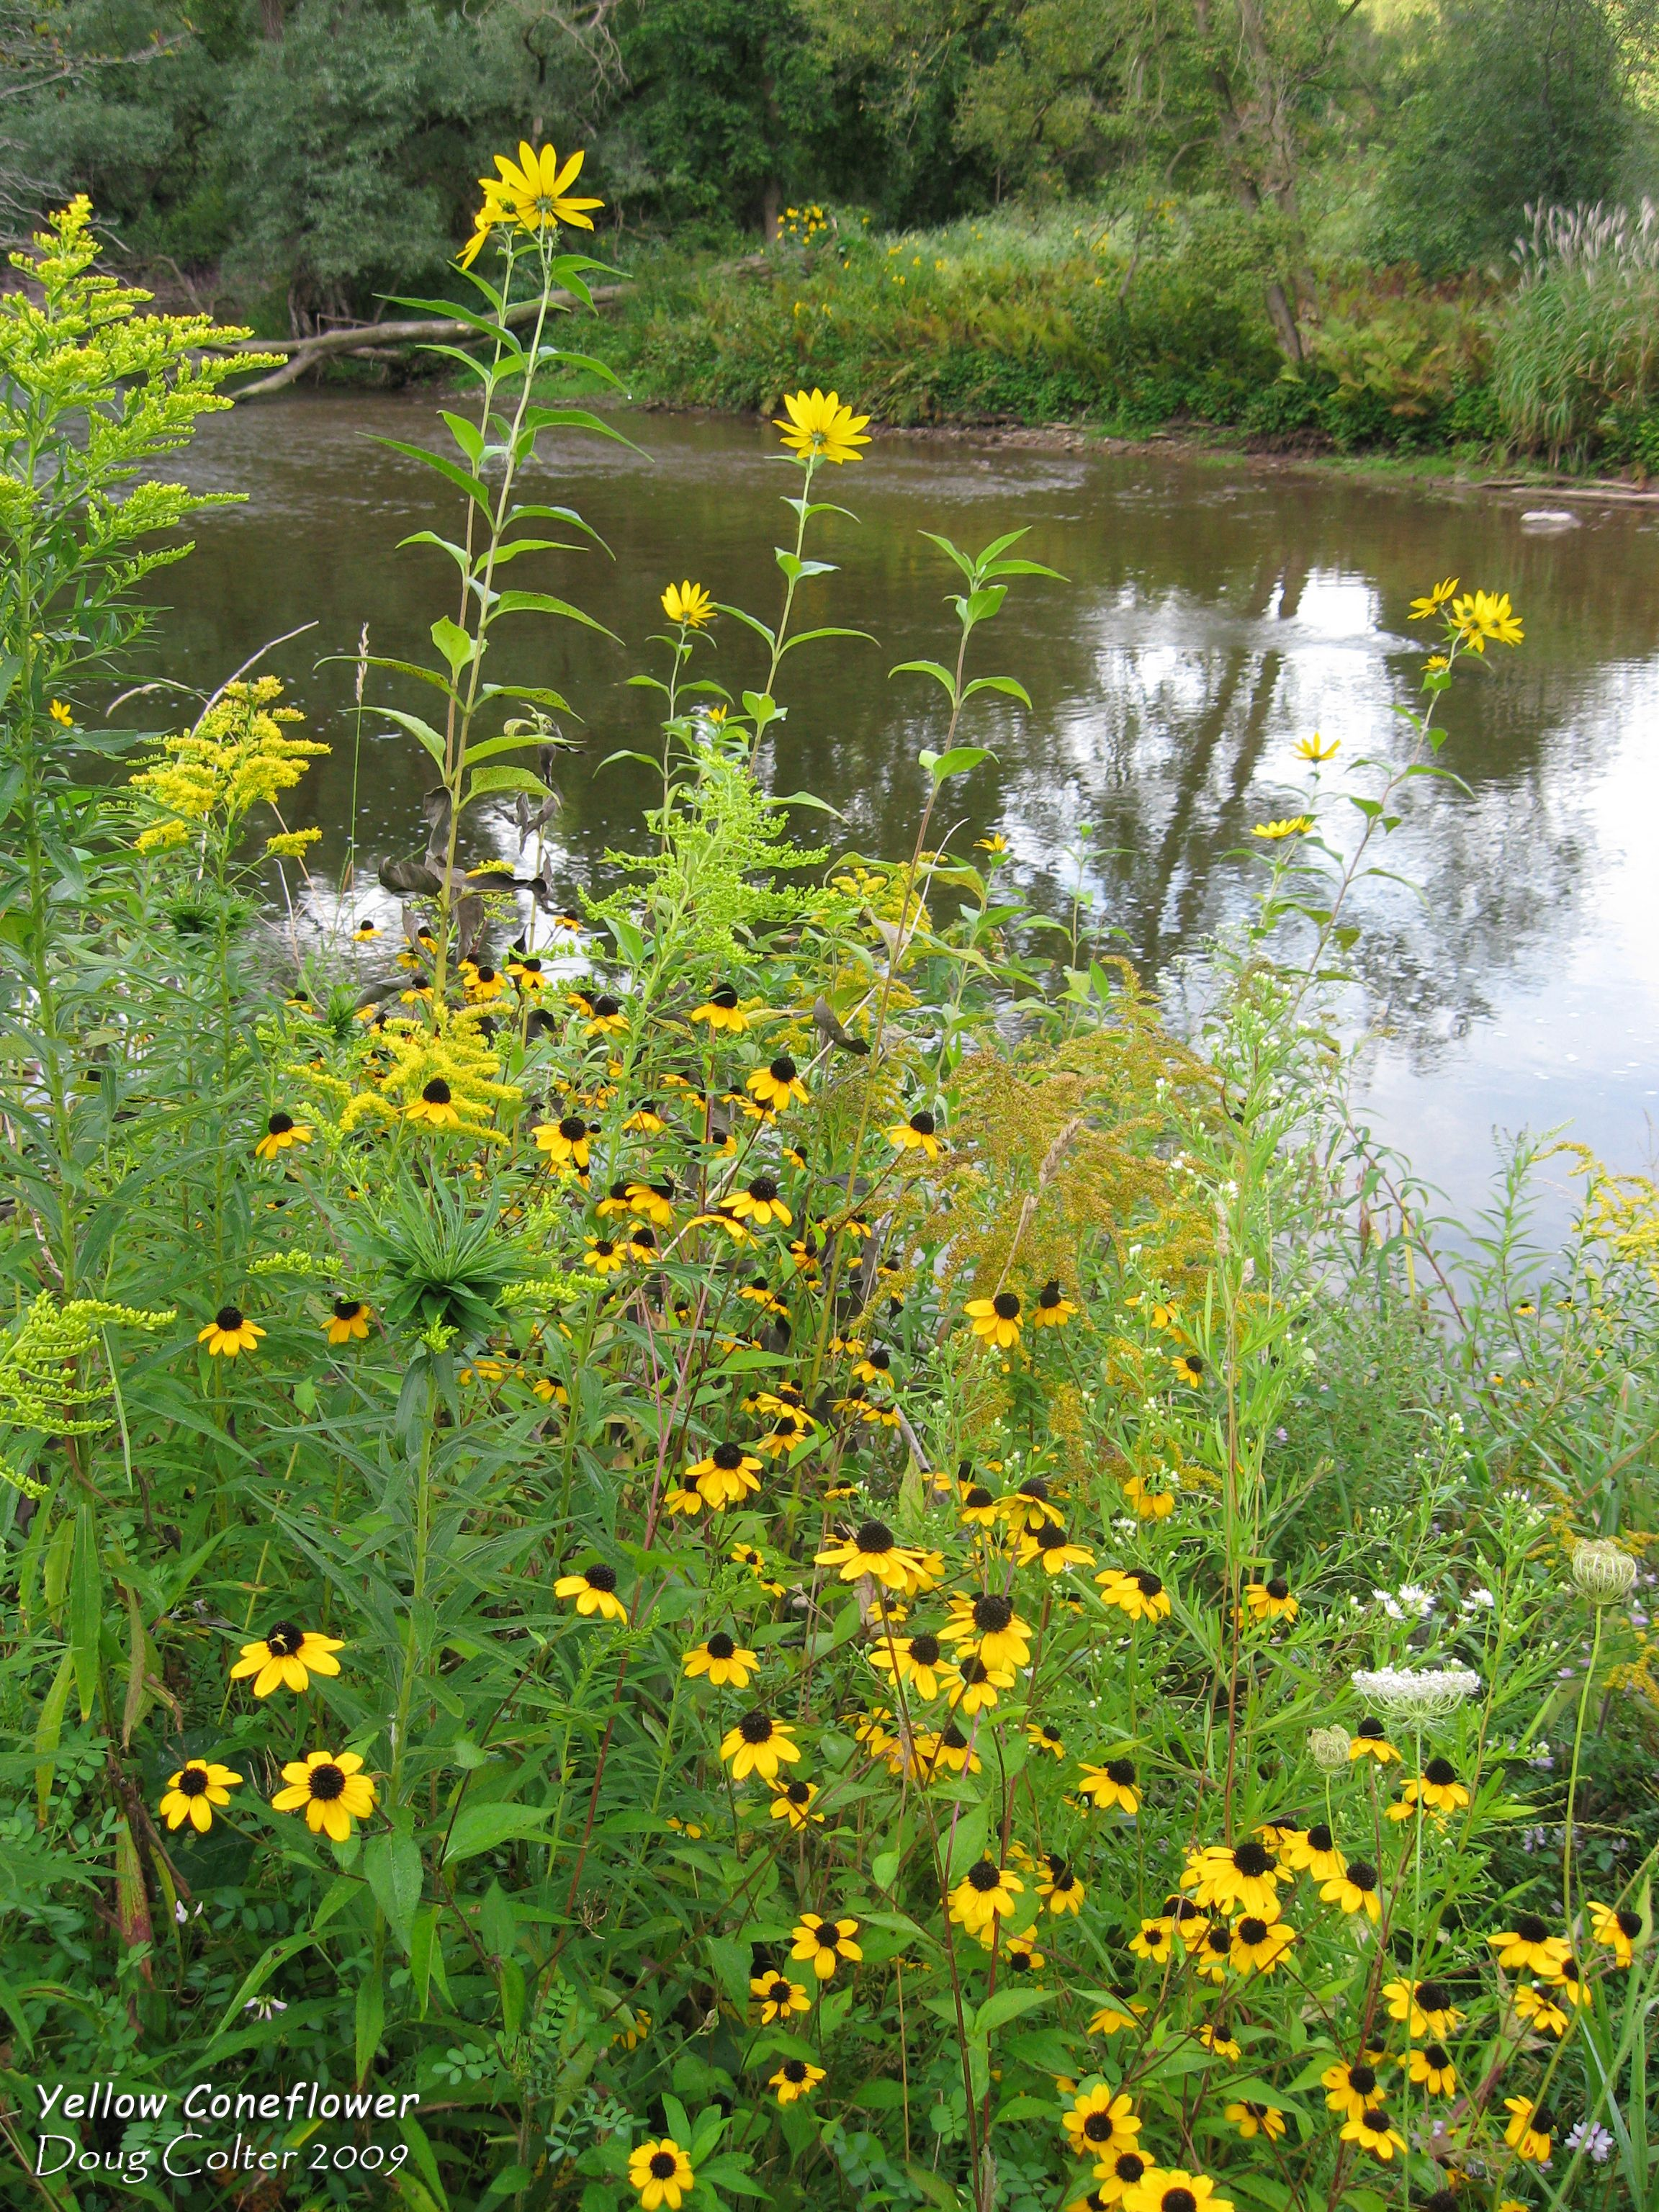 Yellow coneflower ratibida pinnata family aster asteraceae asteraceae habitat wet thickets meadows riversides height 4 feet flower size the daisy like composite flowers occur at the apex of the tall izmirmasajfo Gallery